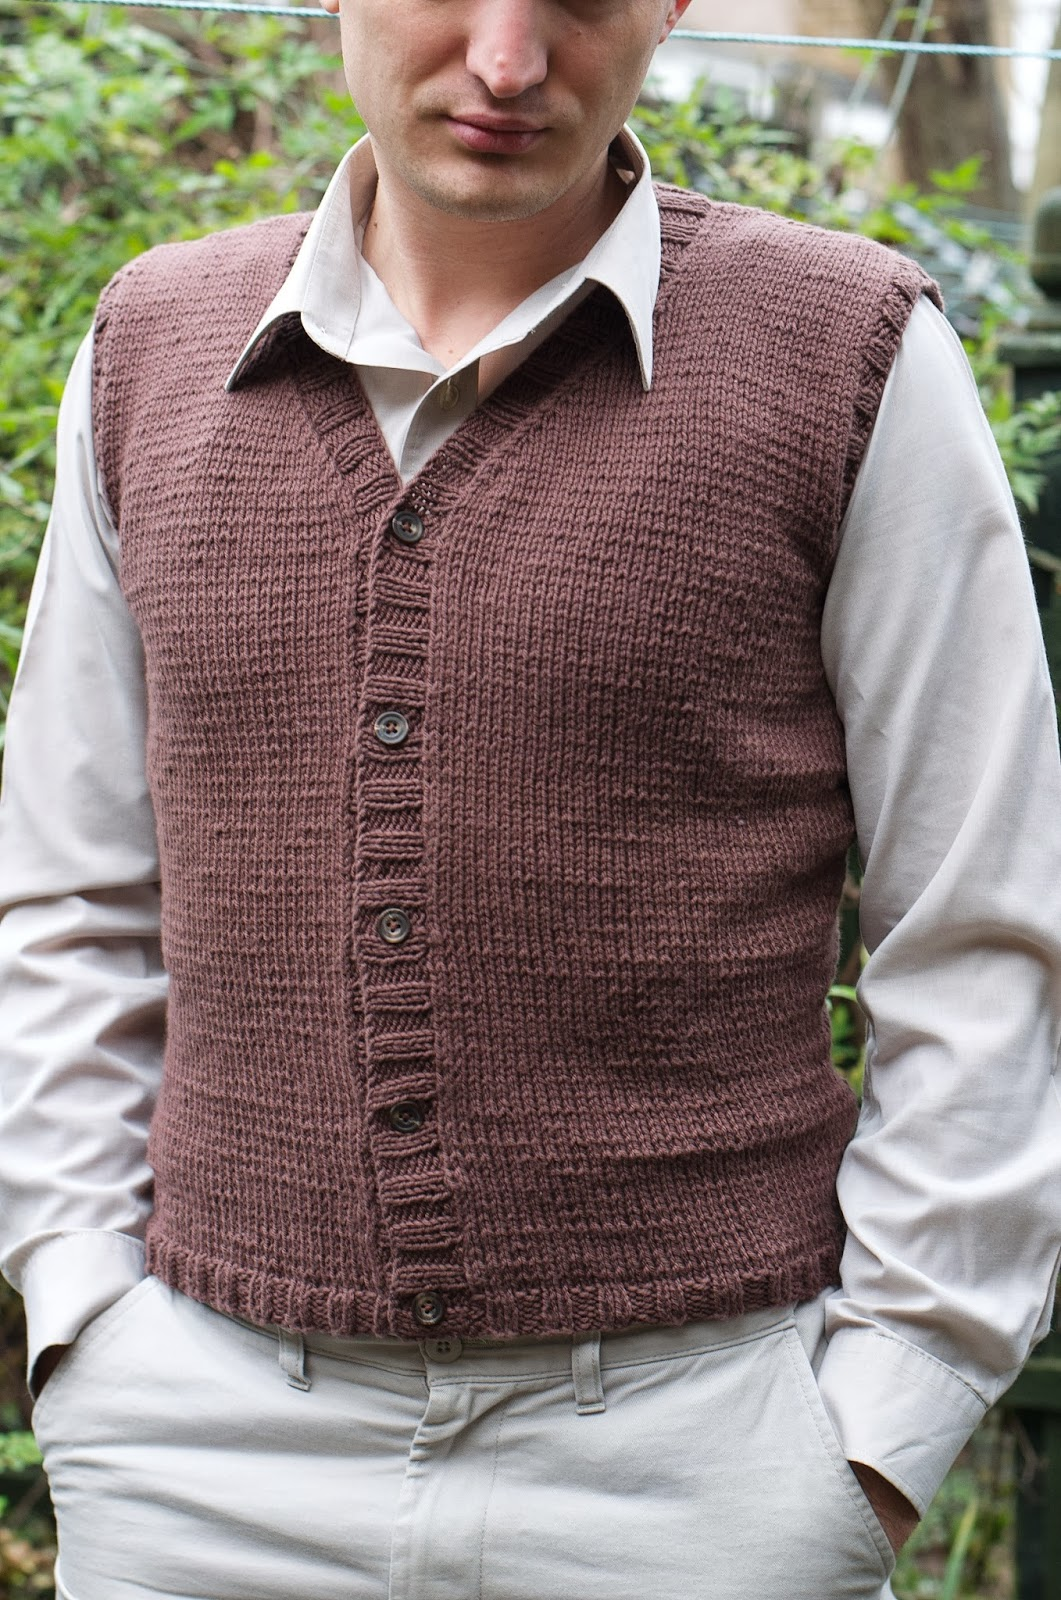 Mens Knitted Vest Pattern : Ela Sews And Doesnt Sleep: What a lucky guy: Knitted mens vest